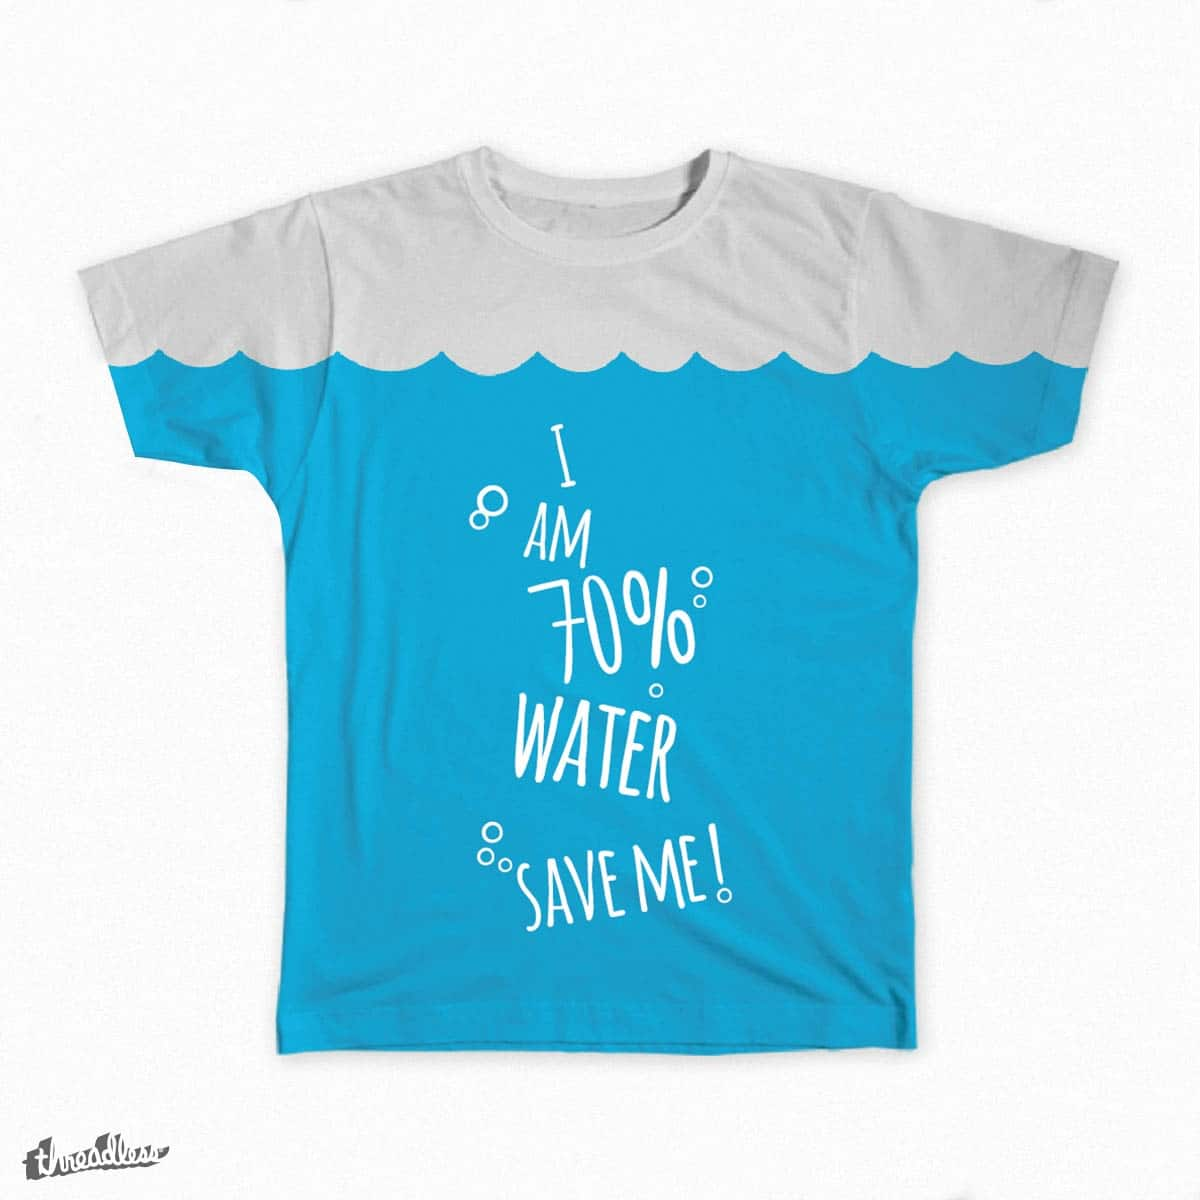 I'm 70% water by noysi on Threadless